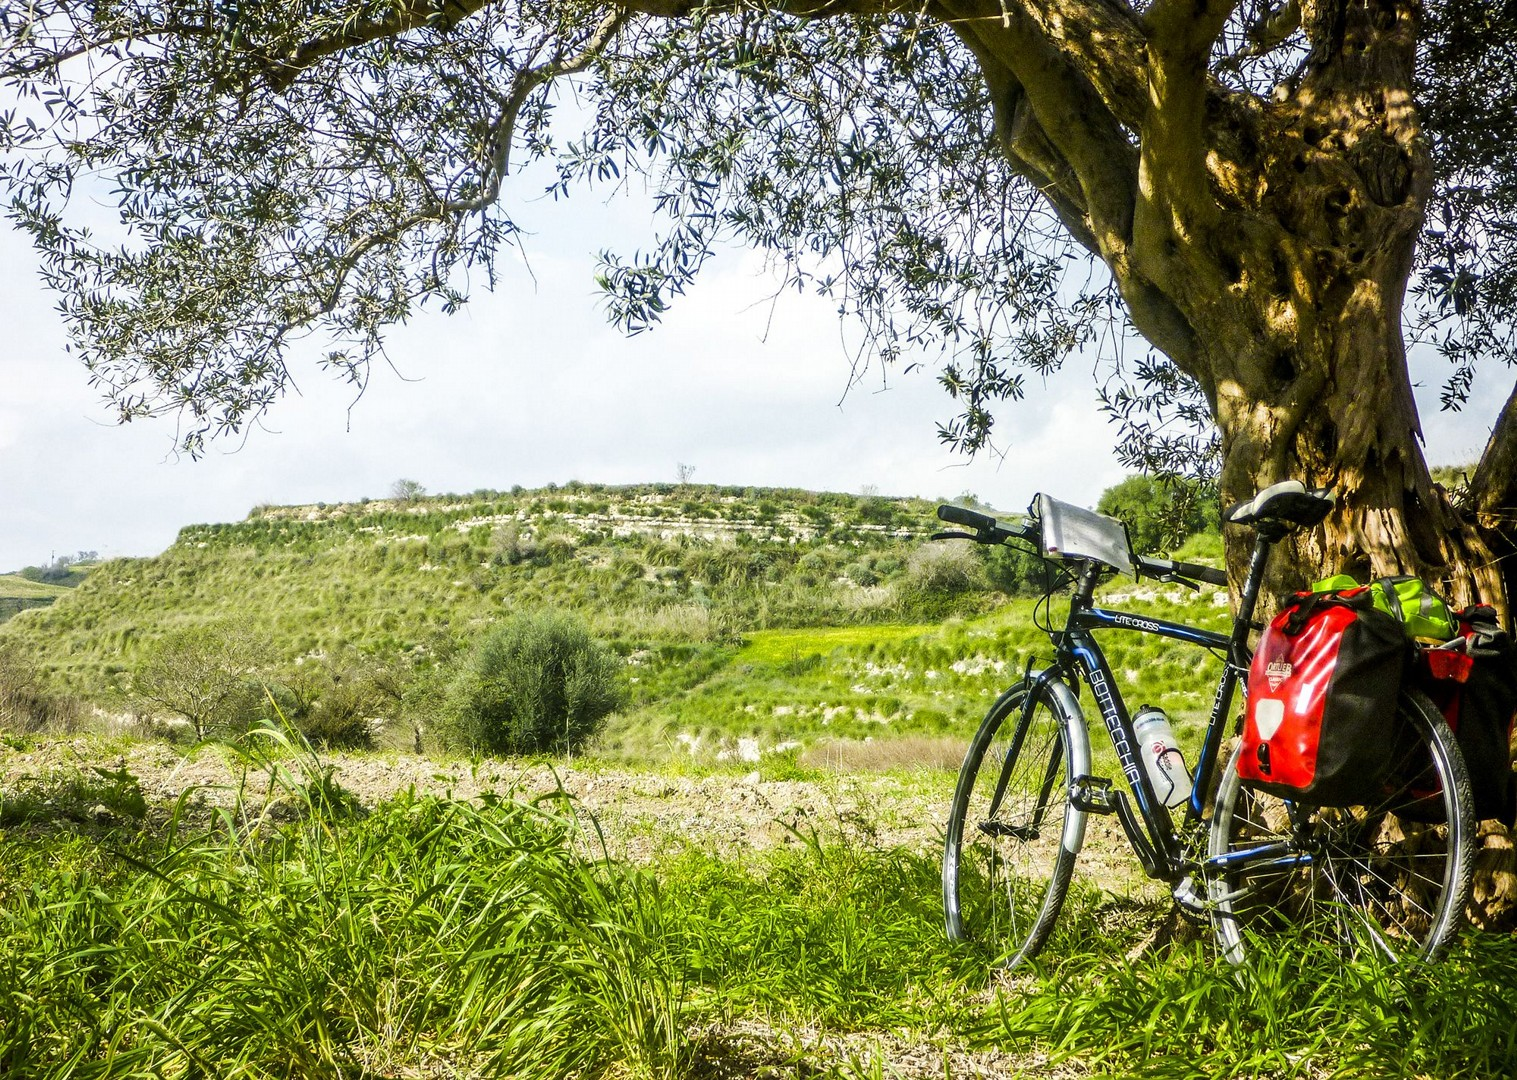 cycling-sicily-italy-skedaddle-leisure-self-guided.jpg - Italy - Sicily - Self-Guided Leisure Cycling Holiday - Leisure Cycling